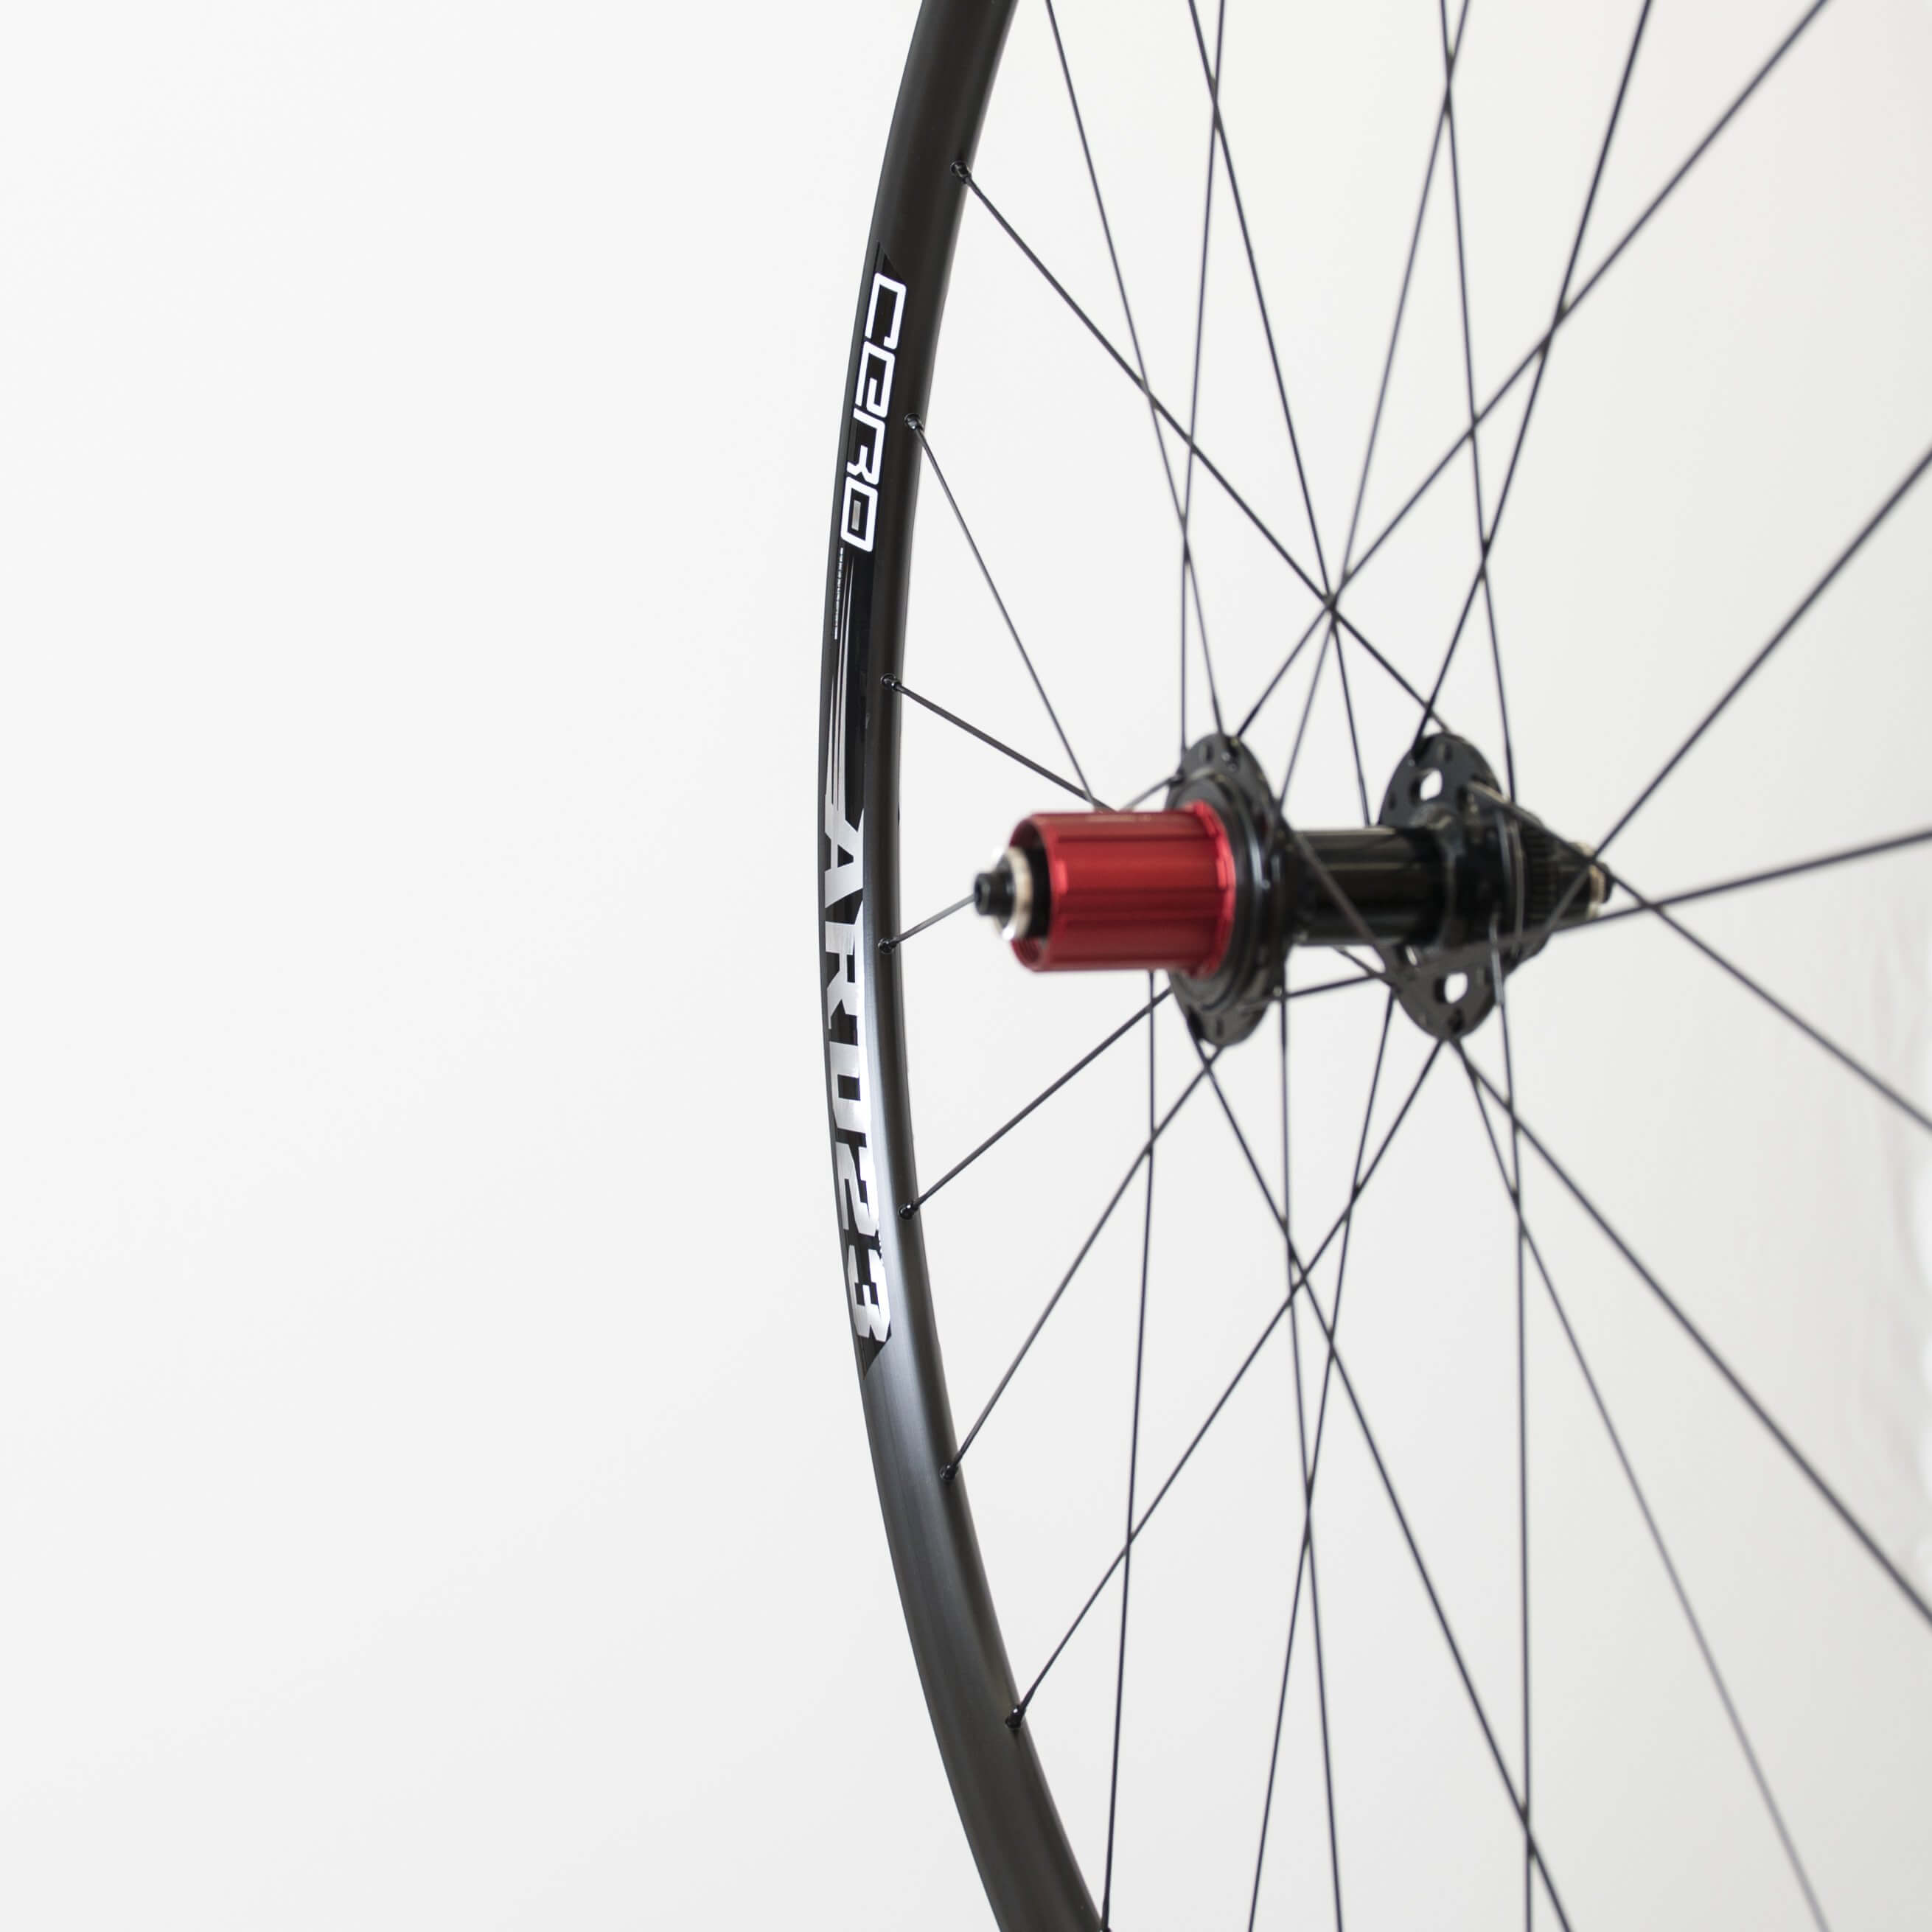 Cero Wheels - Cero ARD23 clinchers for discs at Cycle Division